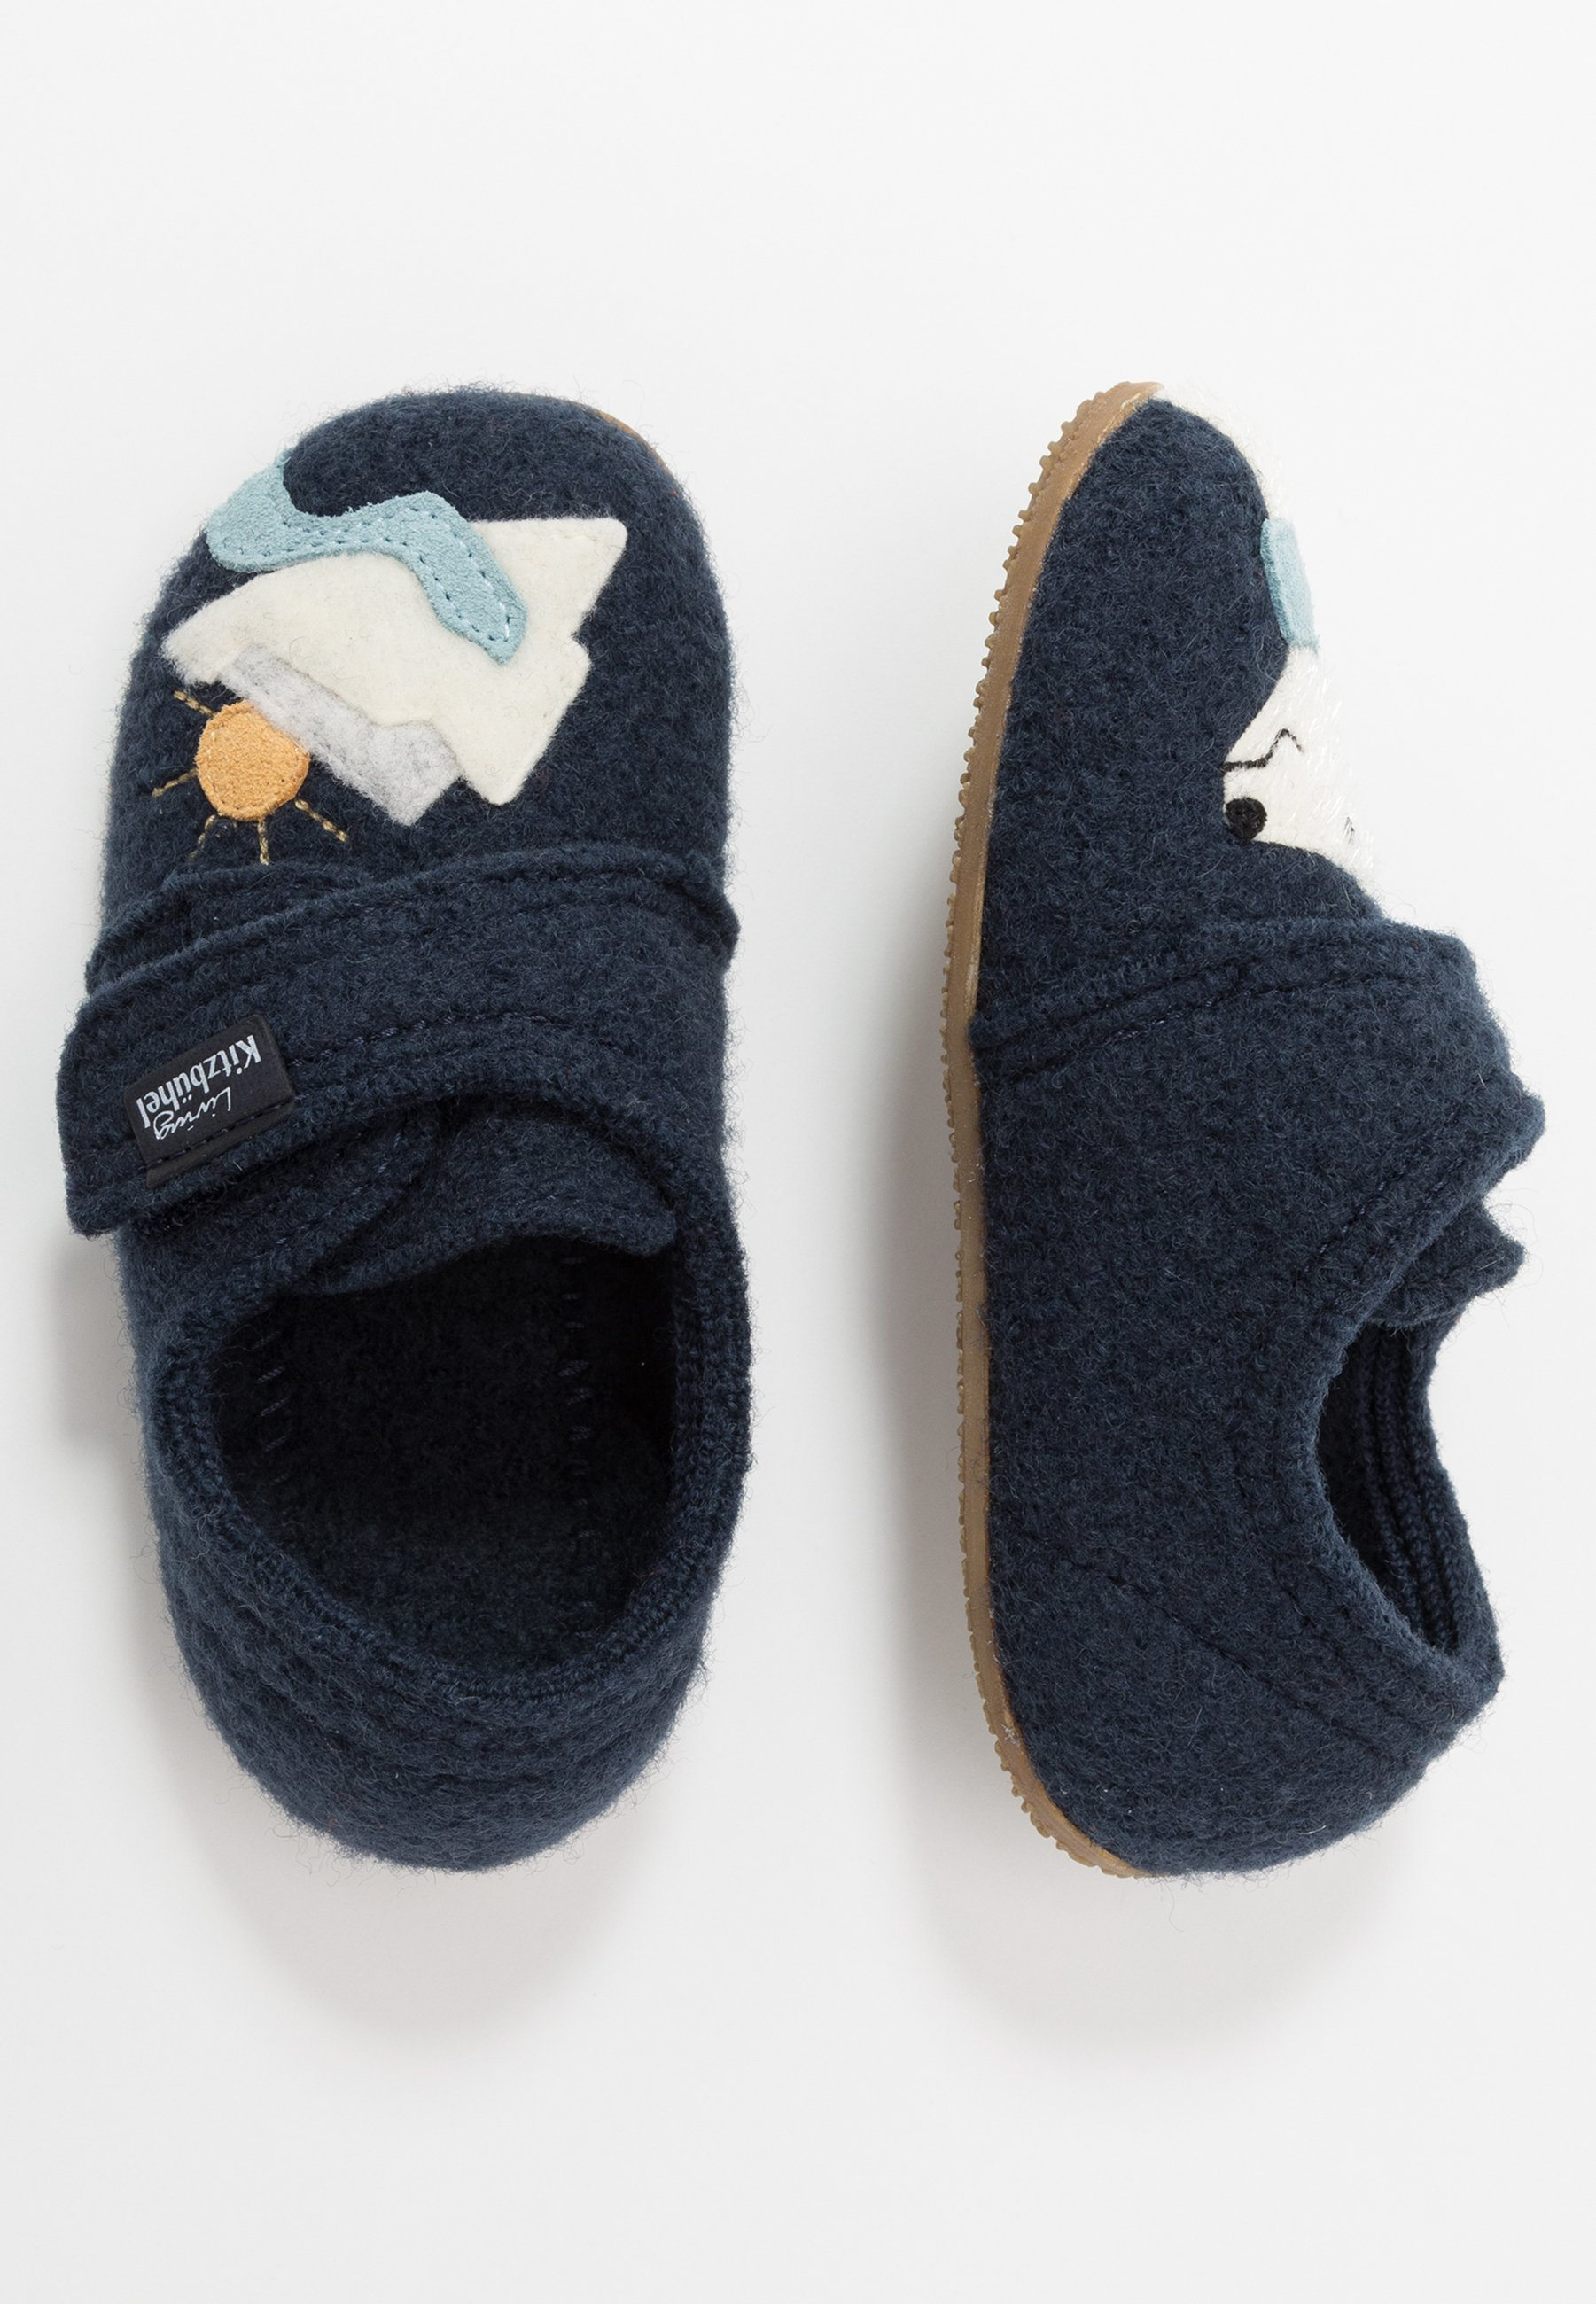 Wholesale Quality Cheapest Living Kitzbühel KLETTMODELL MIT EISBÄR UND EISBERG - Slippers - nightshadow | kids shoes 2020 lzOob